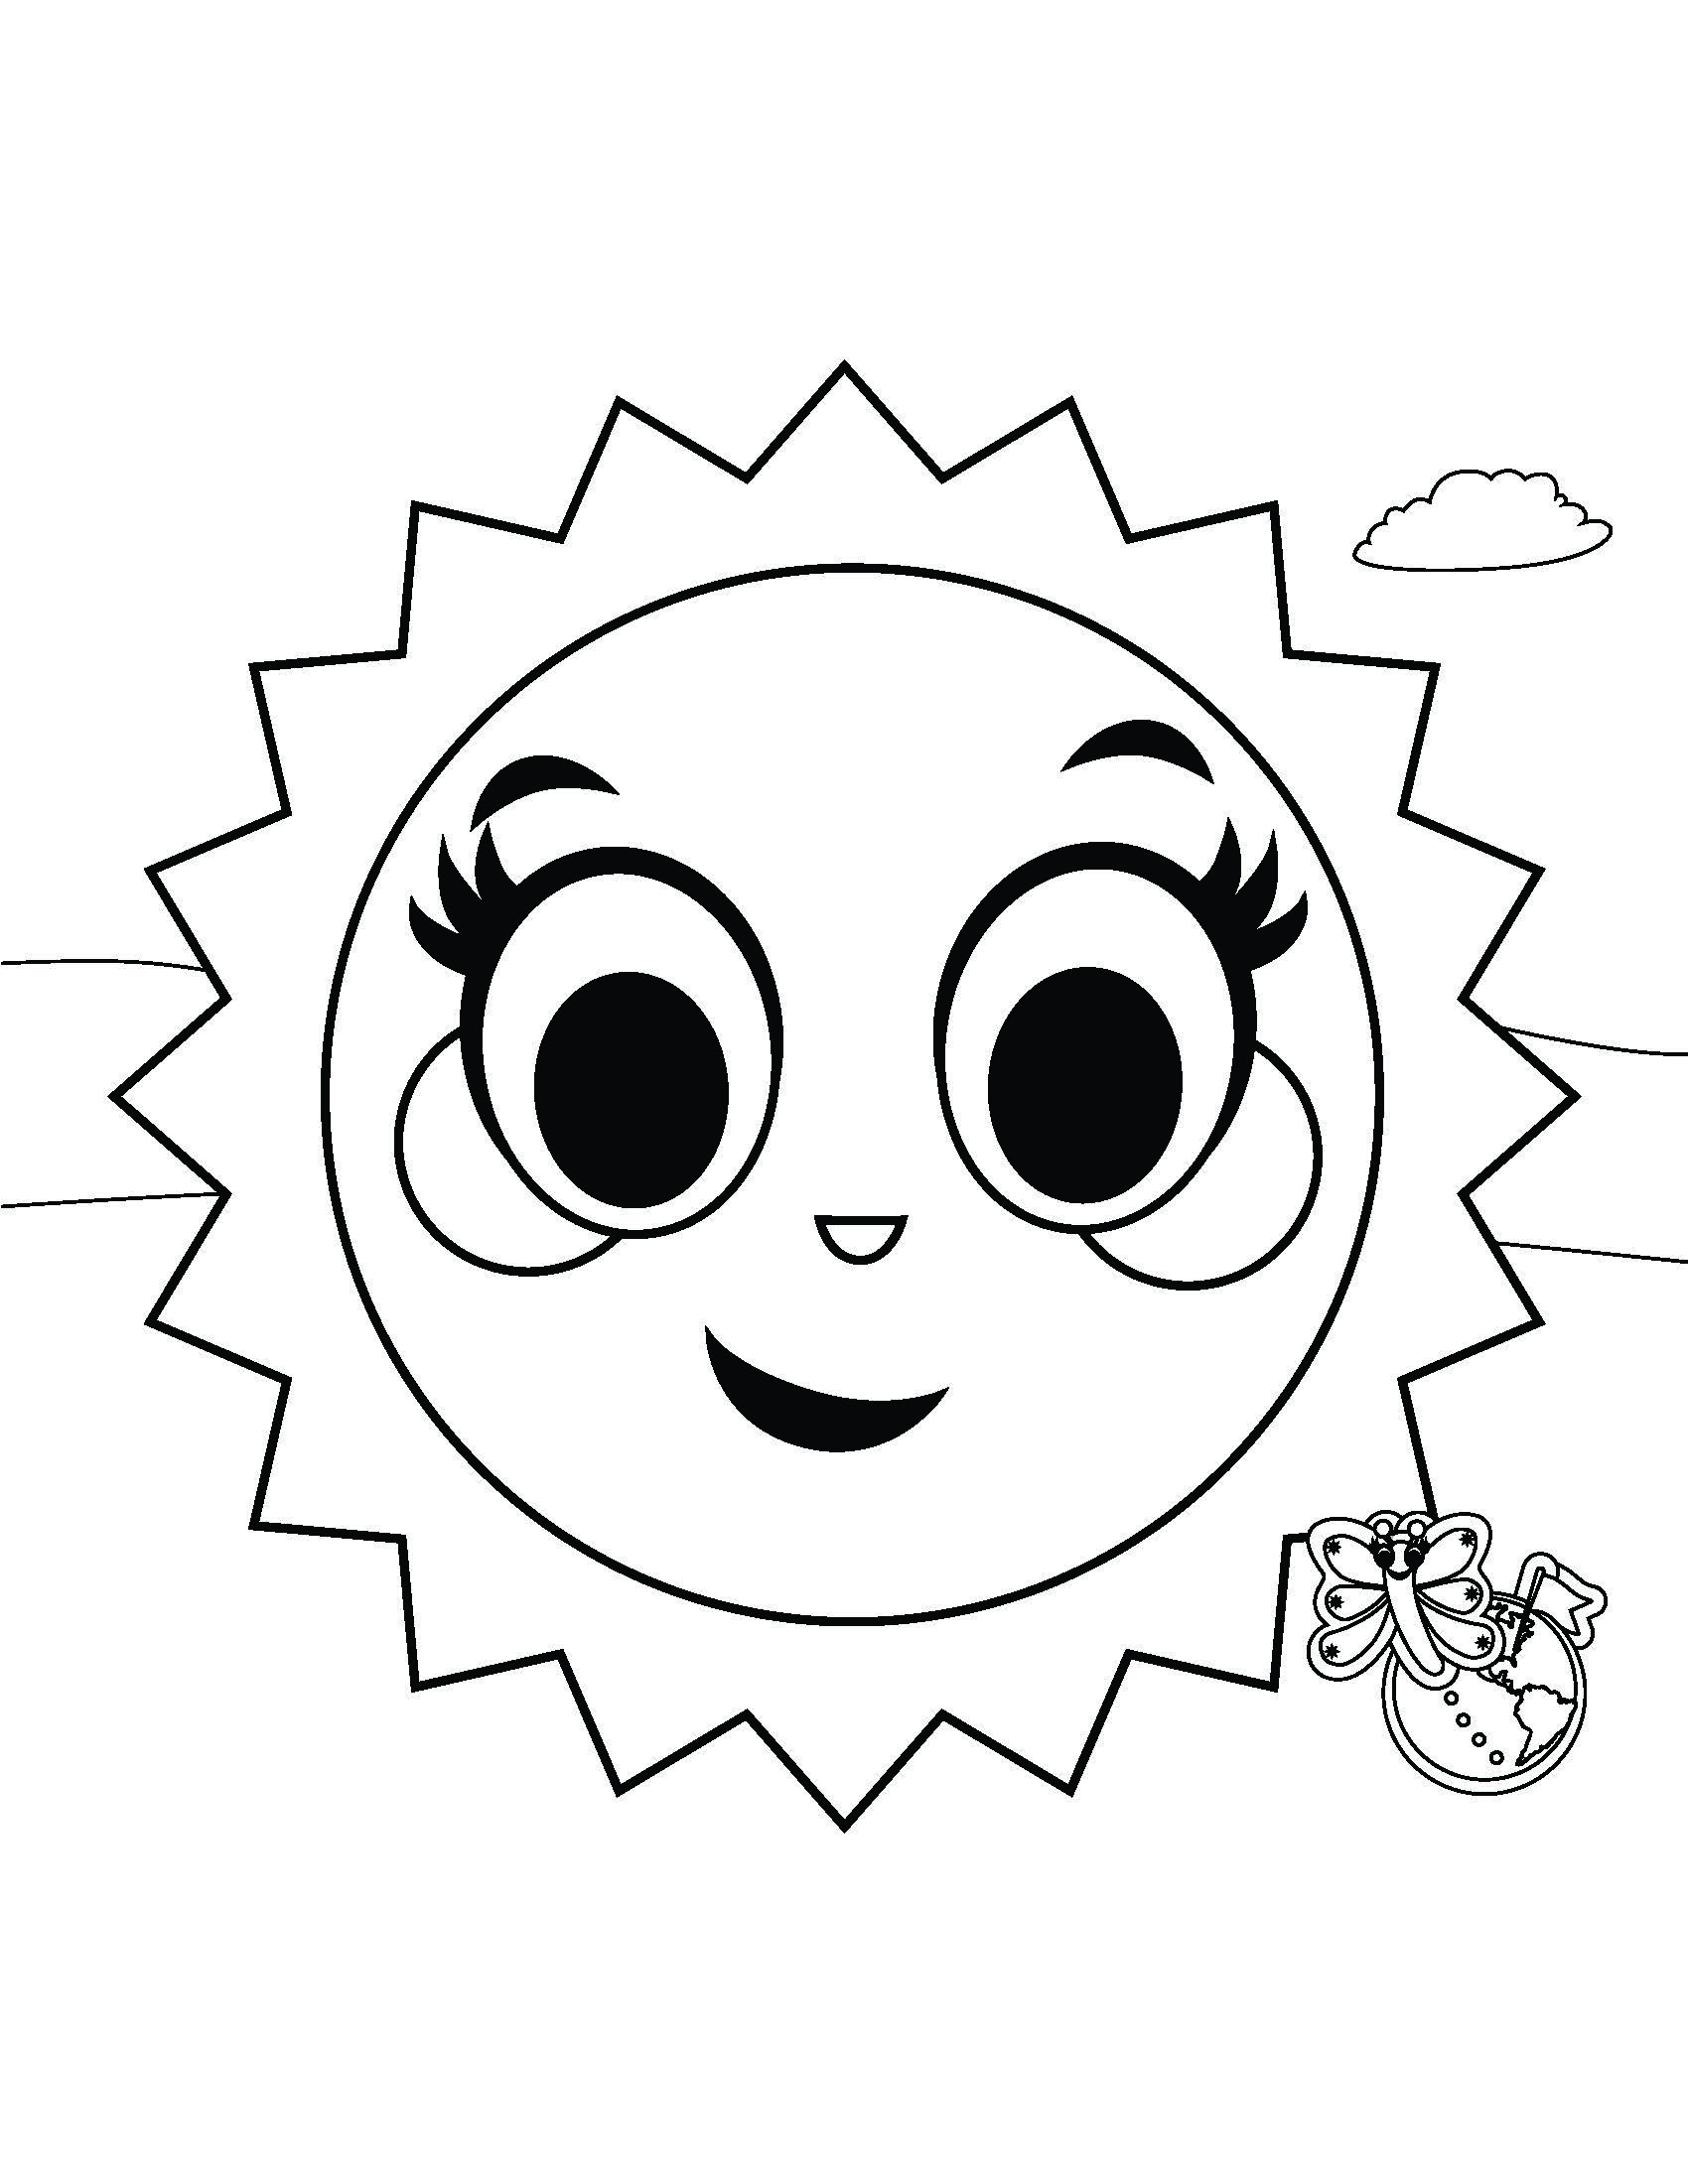 Soleil-the-Sun-Coloring-Page.jpg